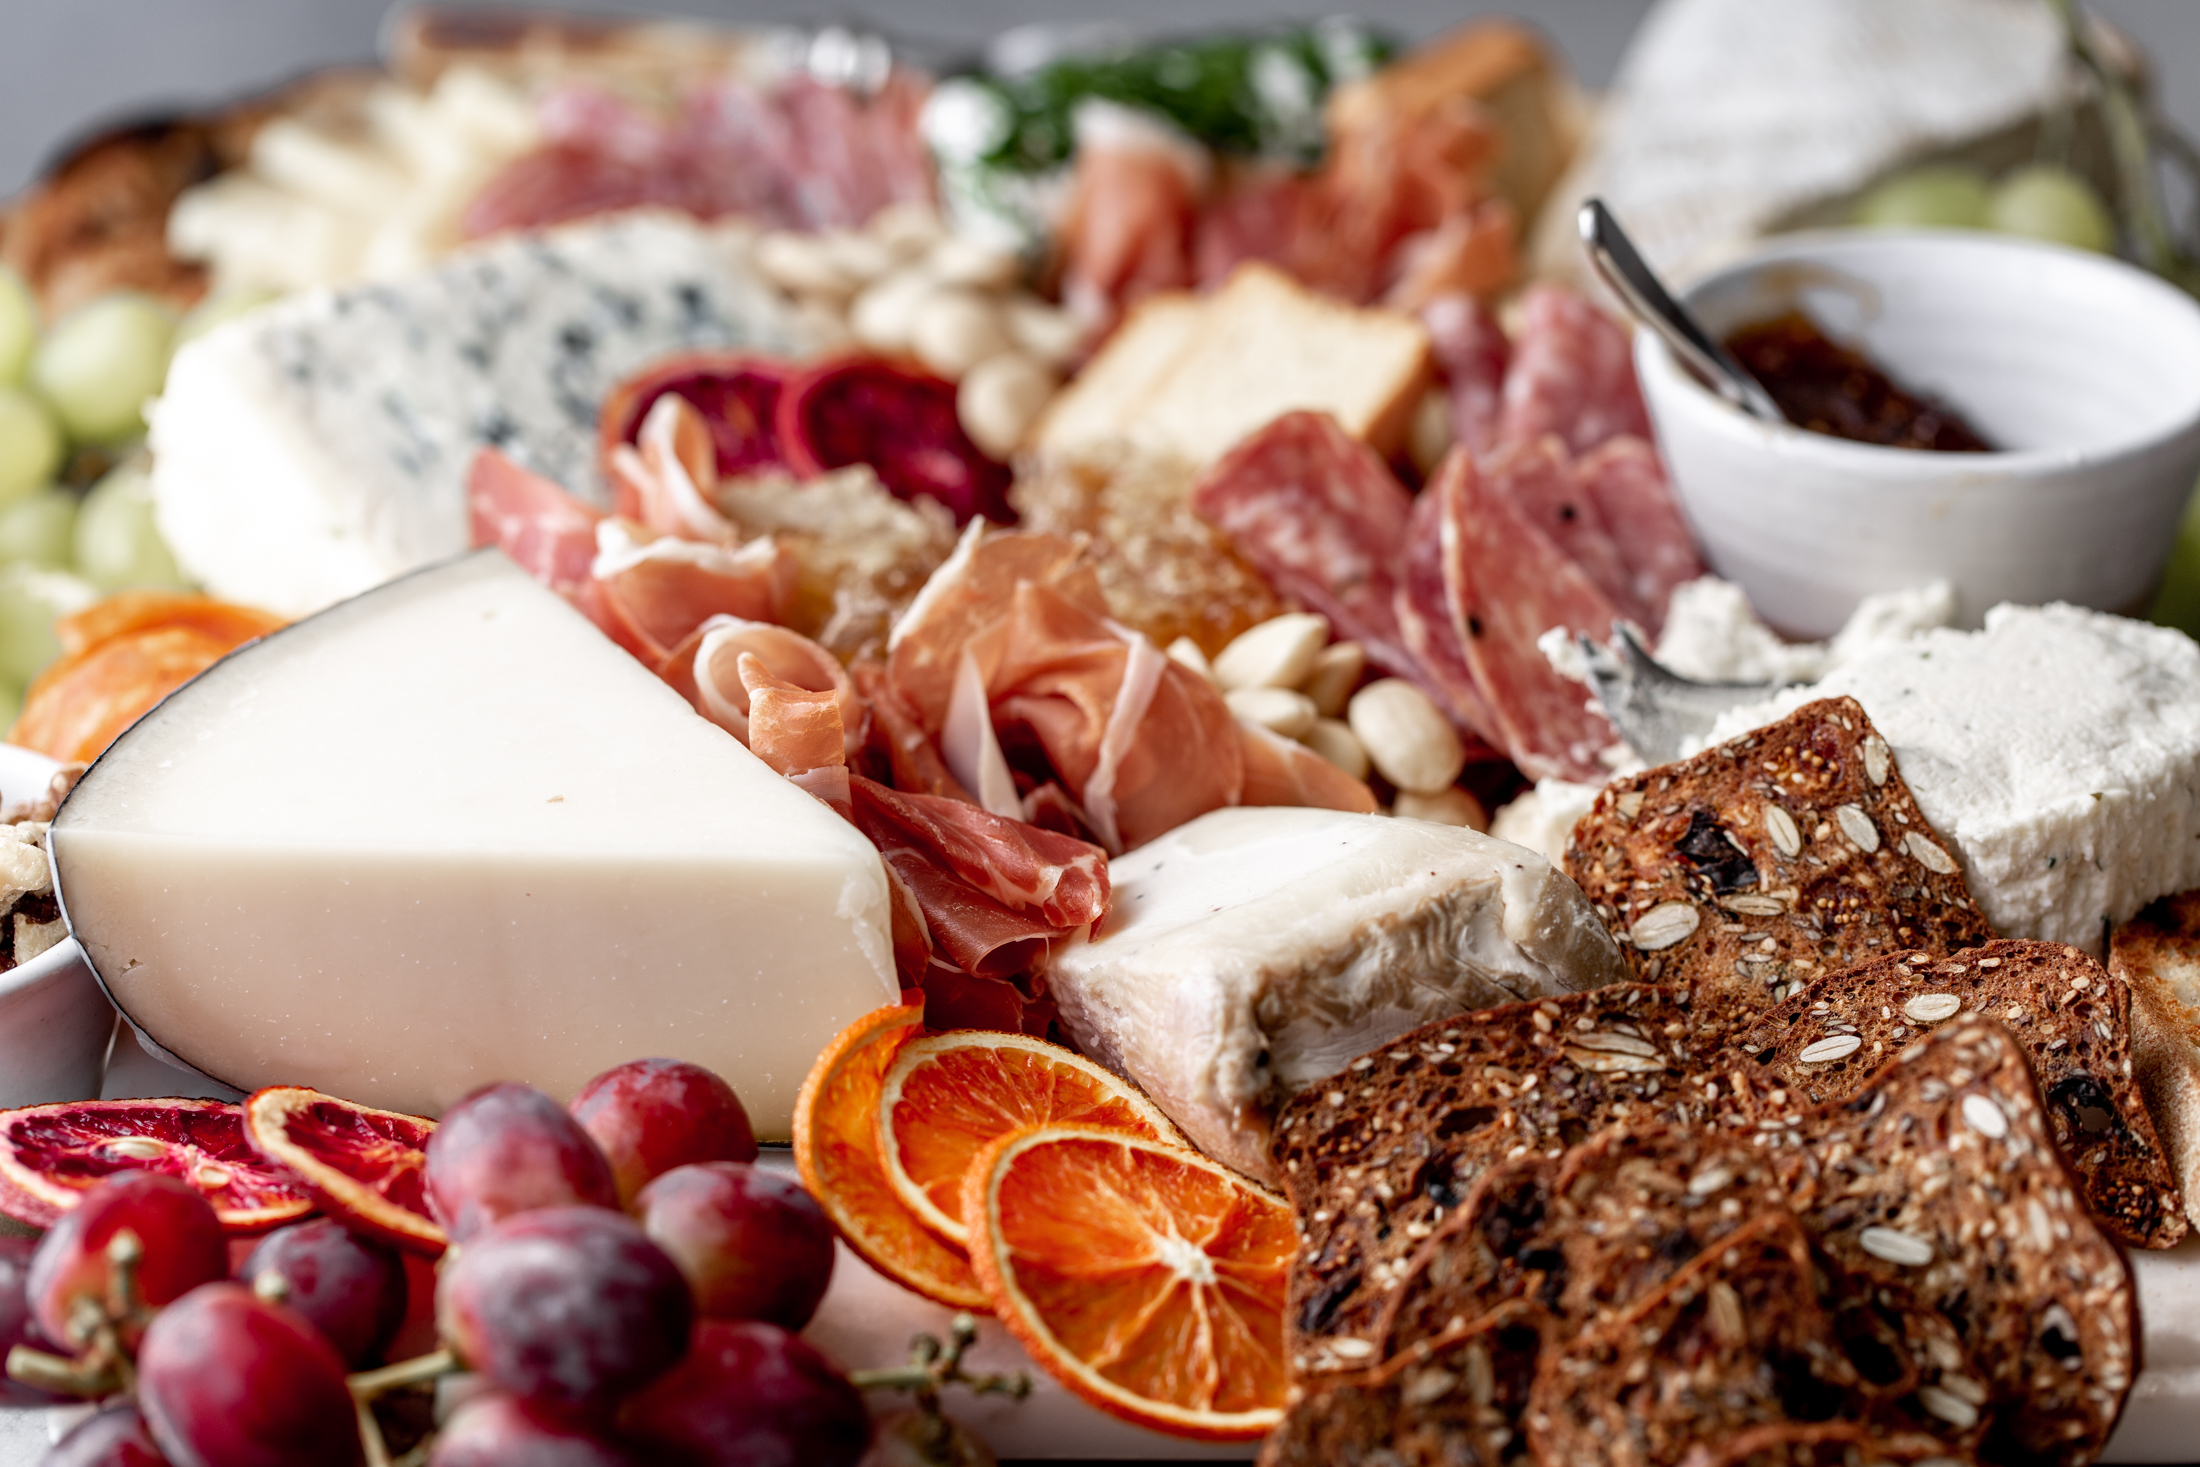 How to put together a cheese and charcuterie board-26.jpg